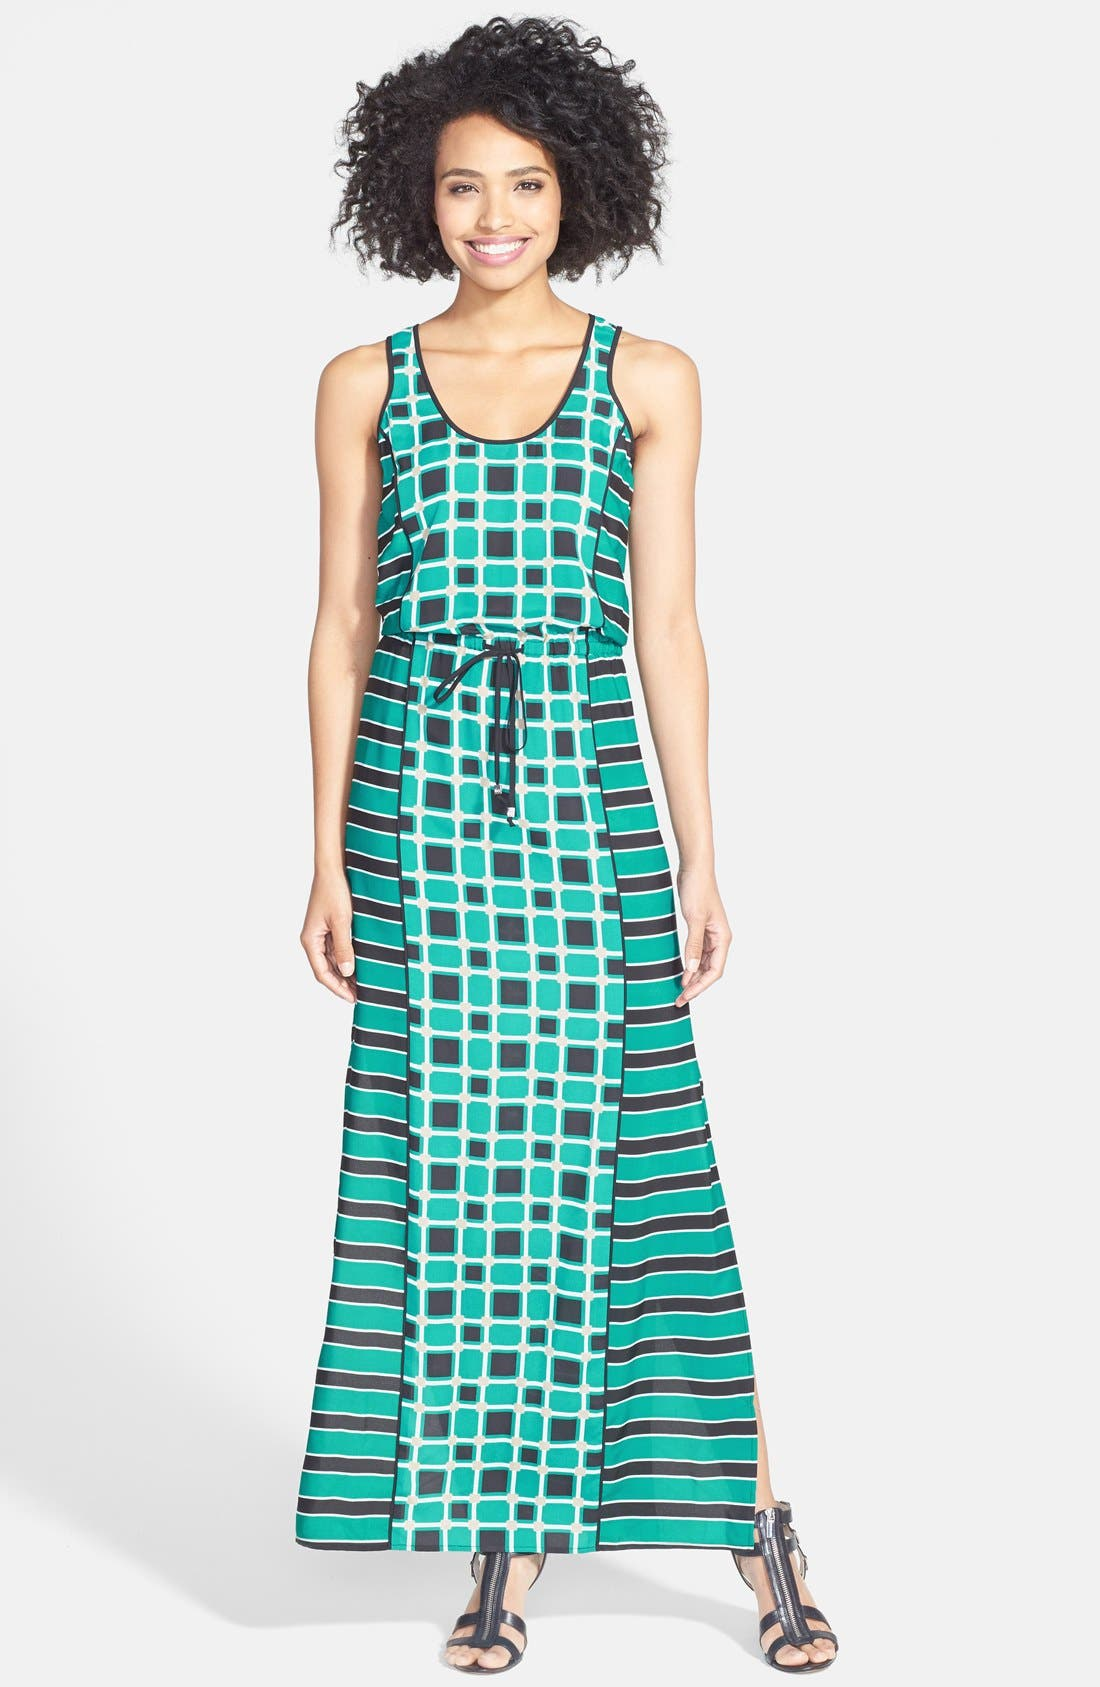 Alternate Image 1 Selected - MICHAEL Michael Kors 'Soho Square' Drawstring Maxi Dress (Regular & Petite)